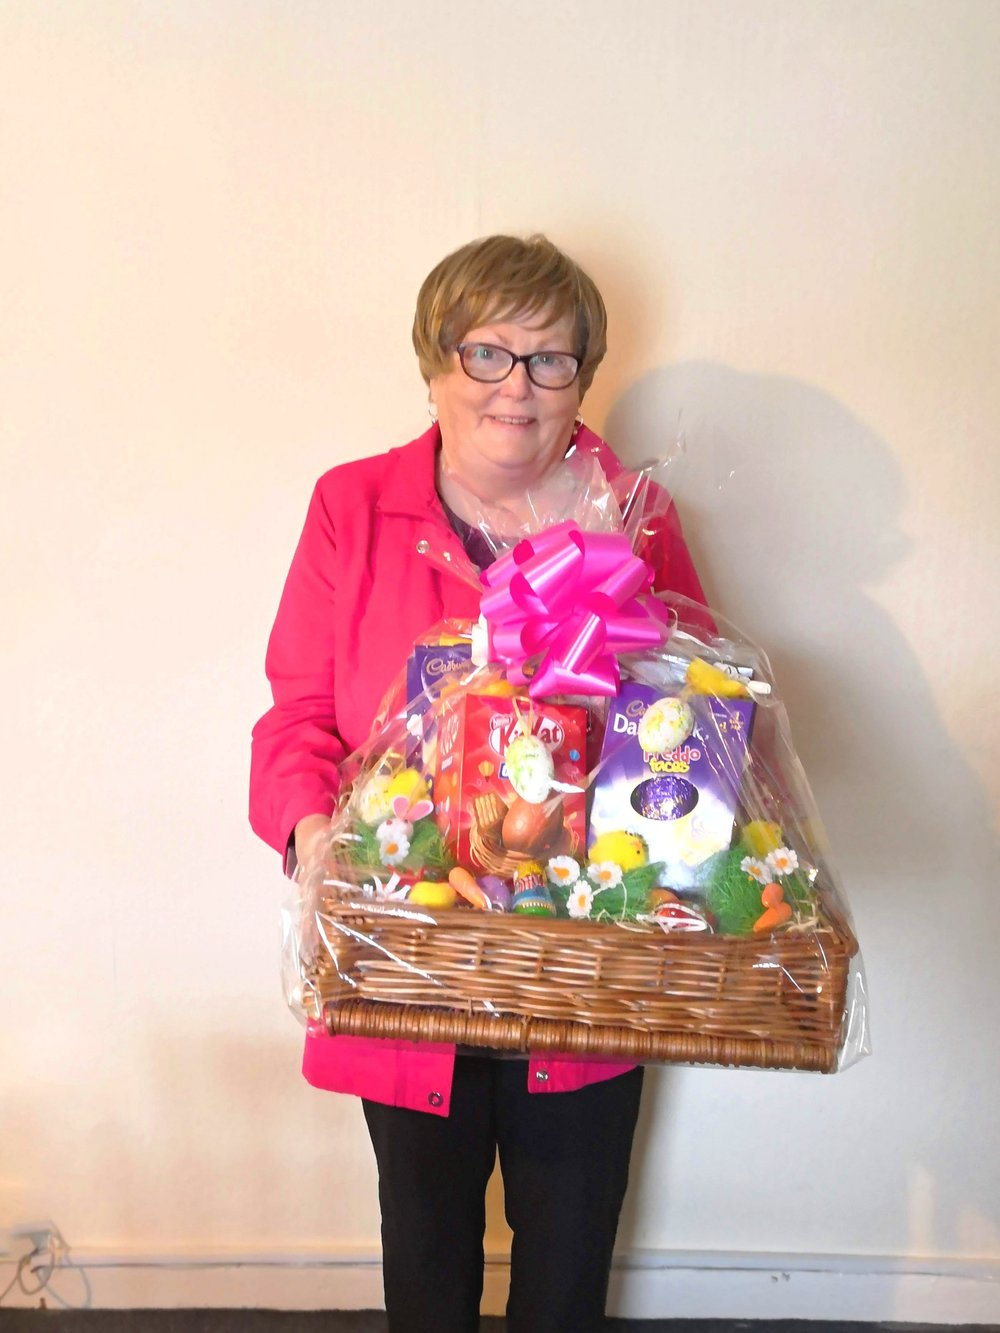 Patricia Hurley accepting hamper on behalf of their grandchild, Emma Hurley.